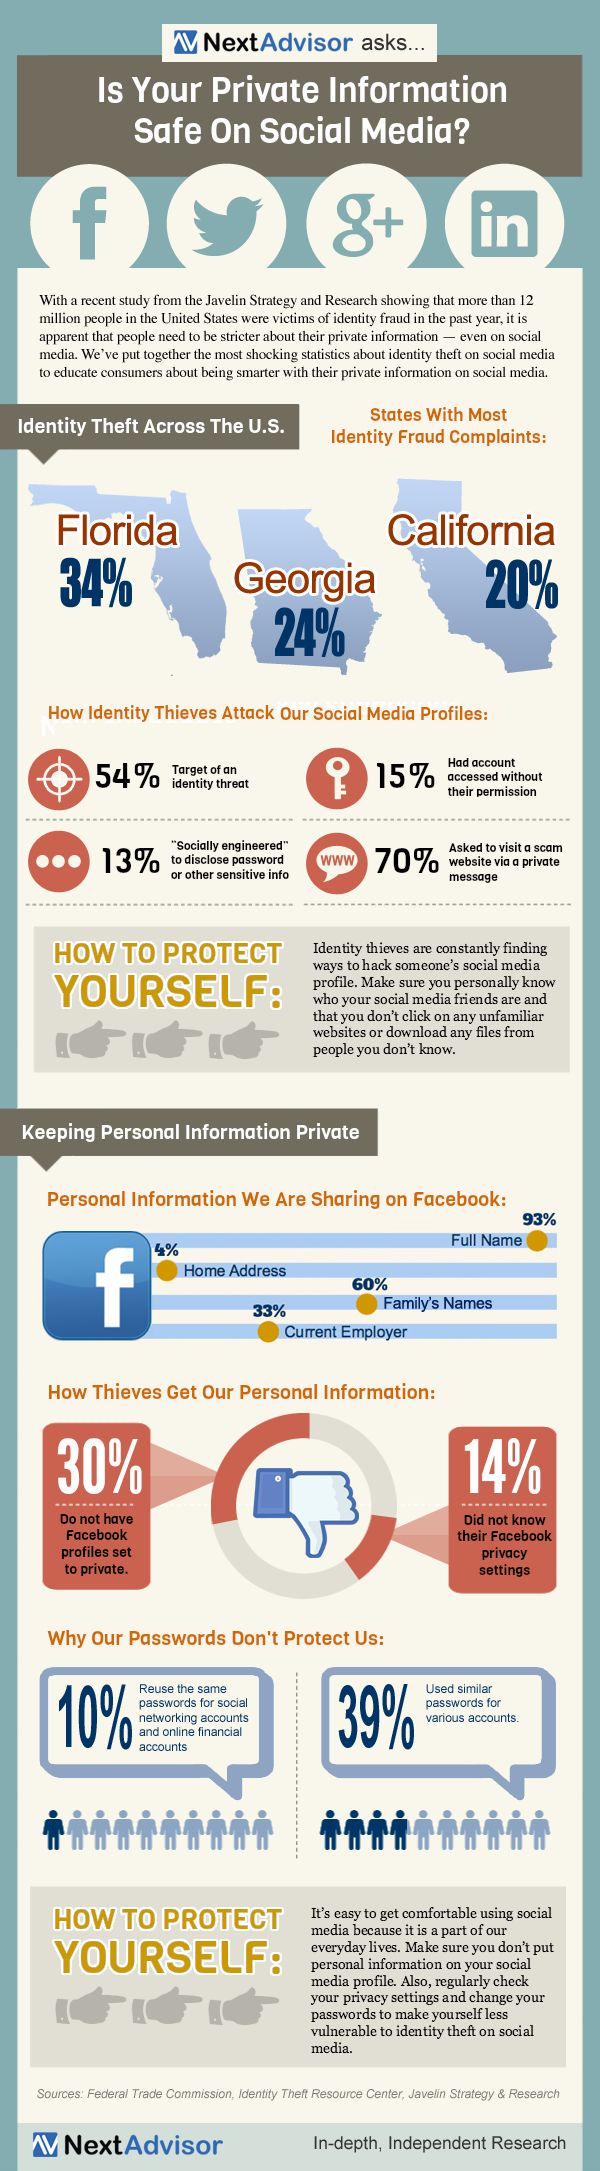 How Much Personal Information Are You Sharing On Facebook?